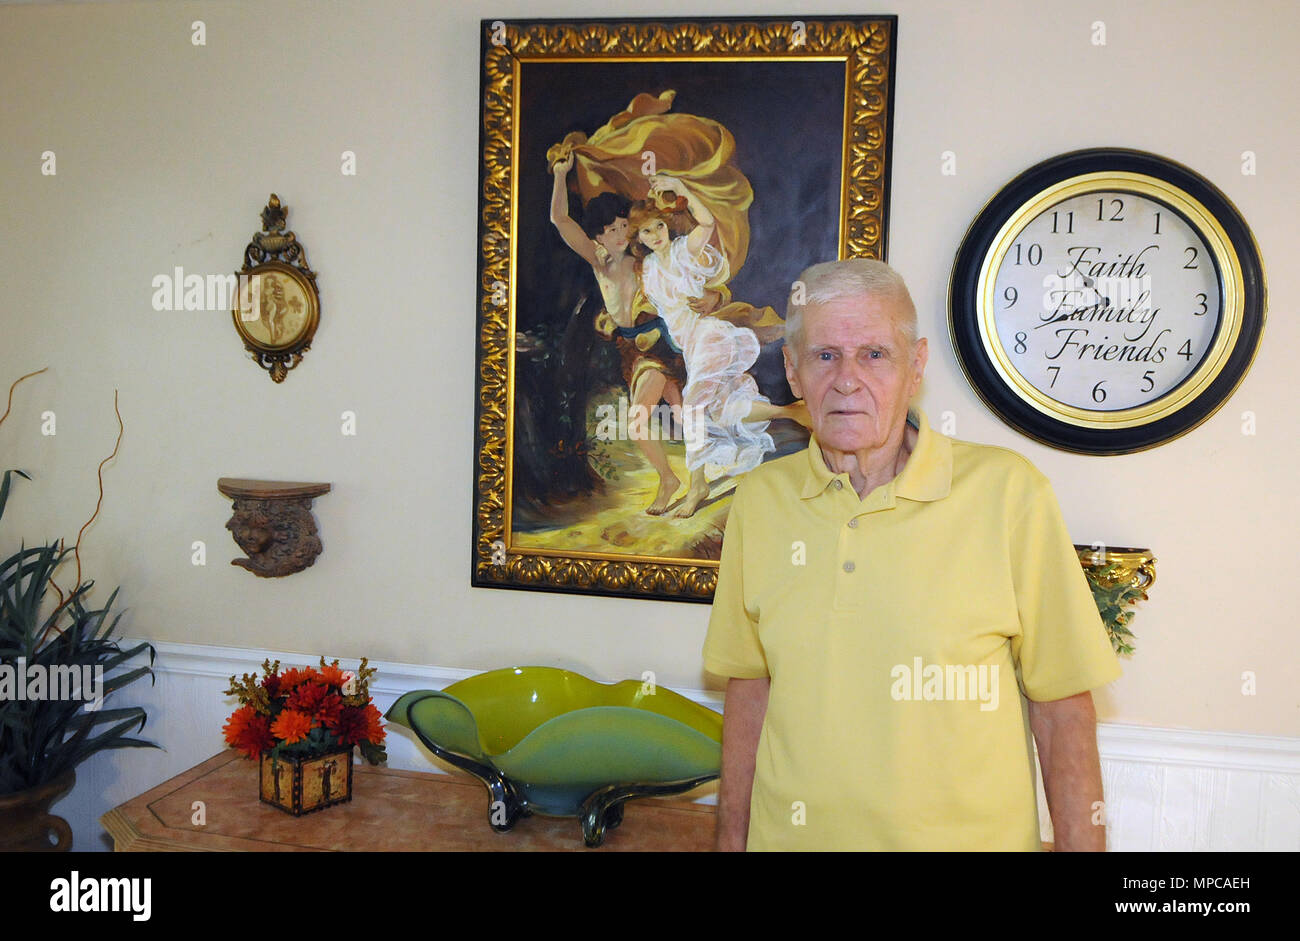 Florida, USA. 22nd May, 2018. Carl Laurin, the author of the book, 'D.B. Cooper & Me: A Criminal, a Spy, My Best Friend', which was released on May 17, 2018, poses at his home on May 22, 2018 in DeLand, Florida. The book chronicles the confessions of Laurin's longtime friend, Walter R. Reca, who, around 2008, related to Laurin that he committed the infamous 1971 hijacking of a Northwest Orient flight from Portland to Seattle. Credit: Paul Hennessy/Alamy Live News - Stock Image